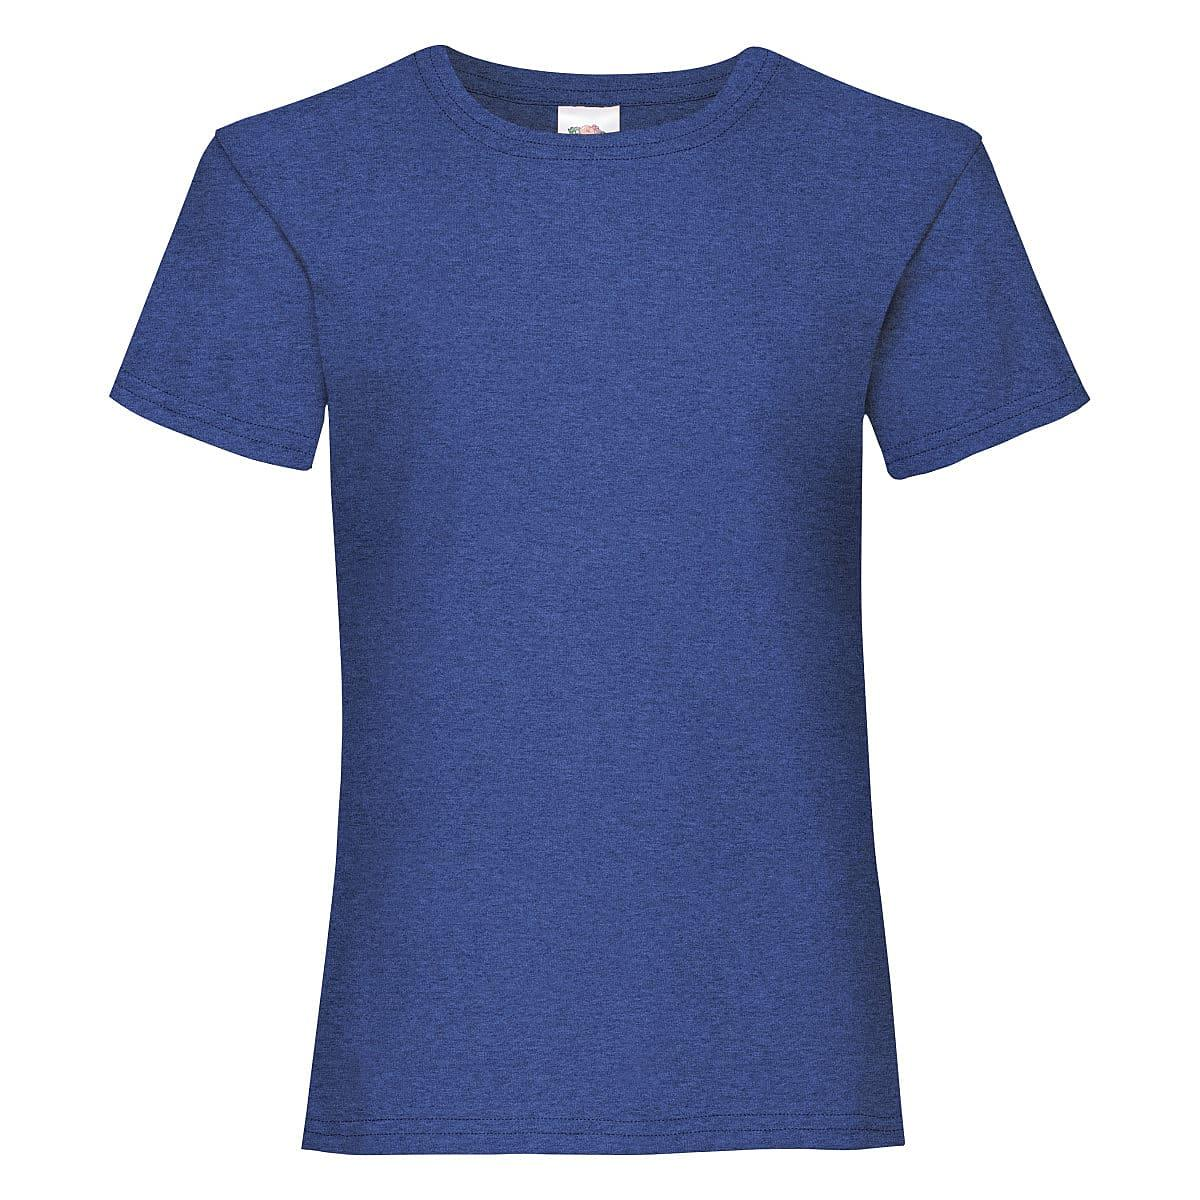 Fruit Of The Loom Girls Valueweight T-Shirt in Retro Heather Royal (Product Code: 61005)